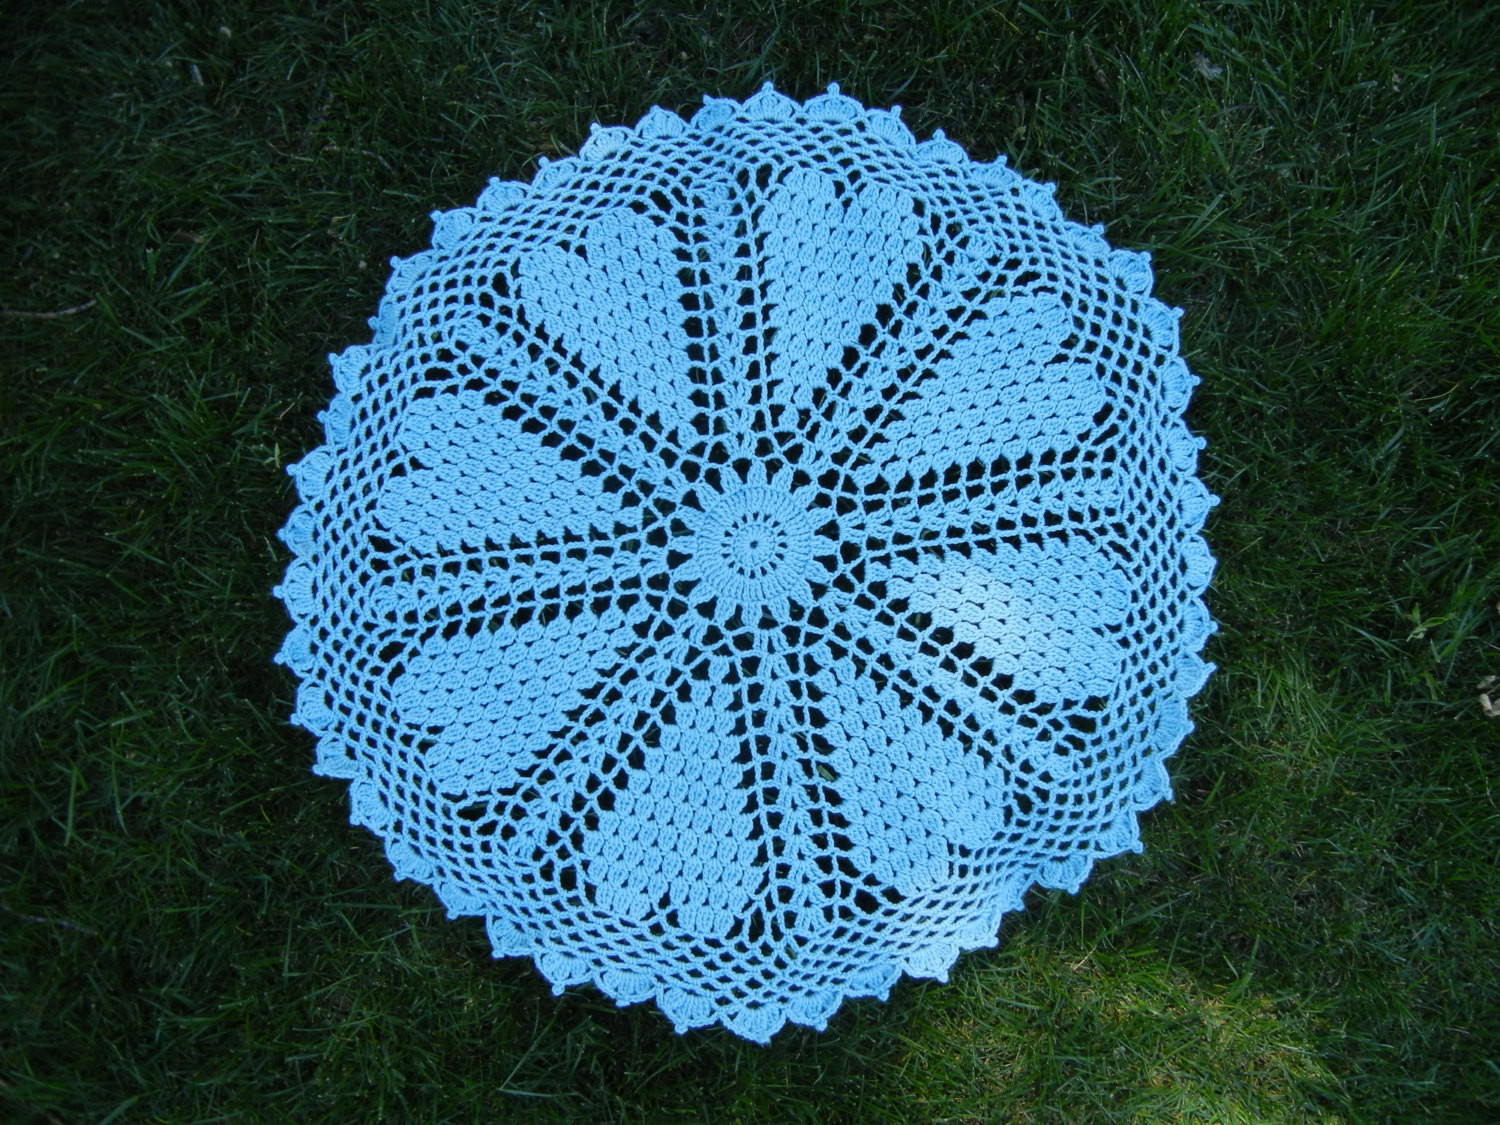 Crochet Round Blue Baby Blanket or Lap Throw